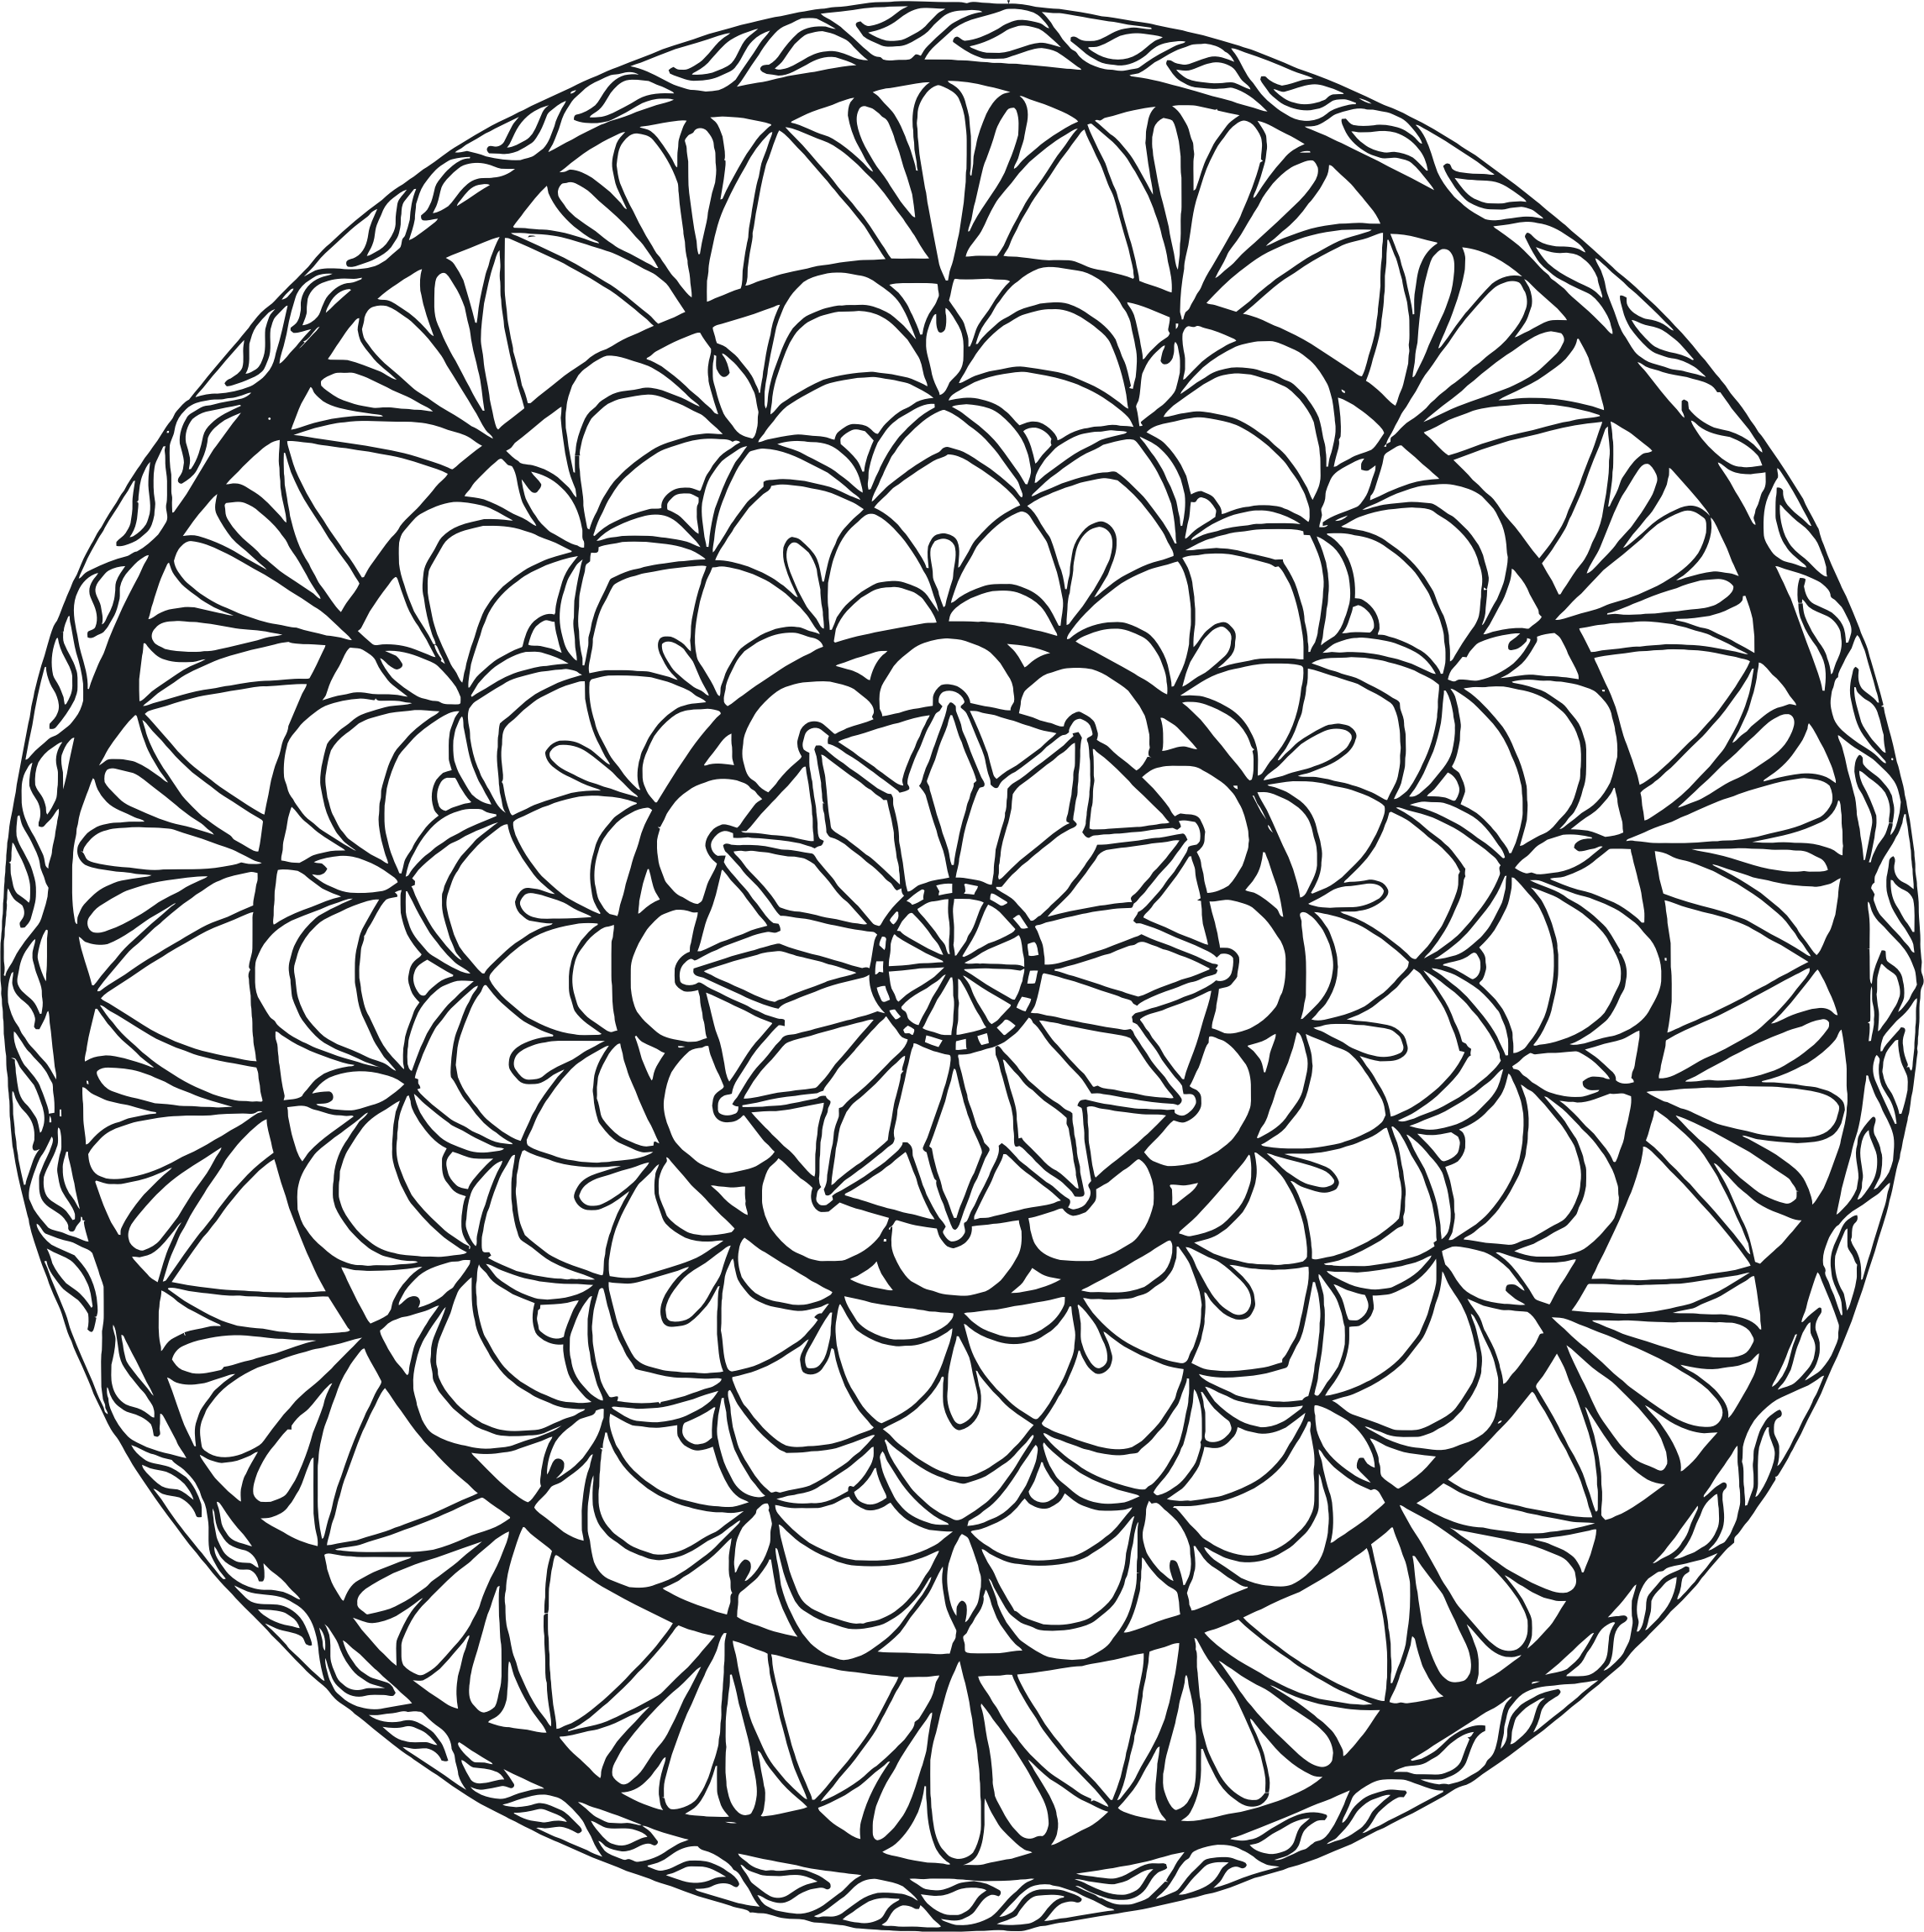 Hand Drawn Mandala 2 No Fills by GDJ